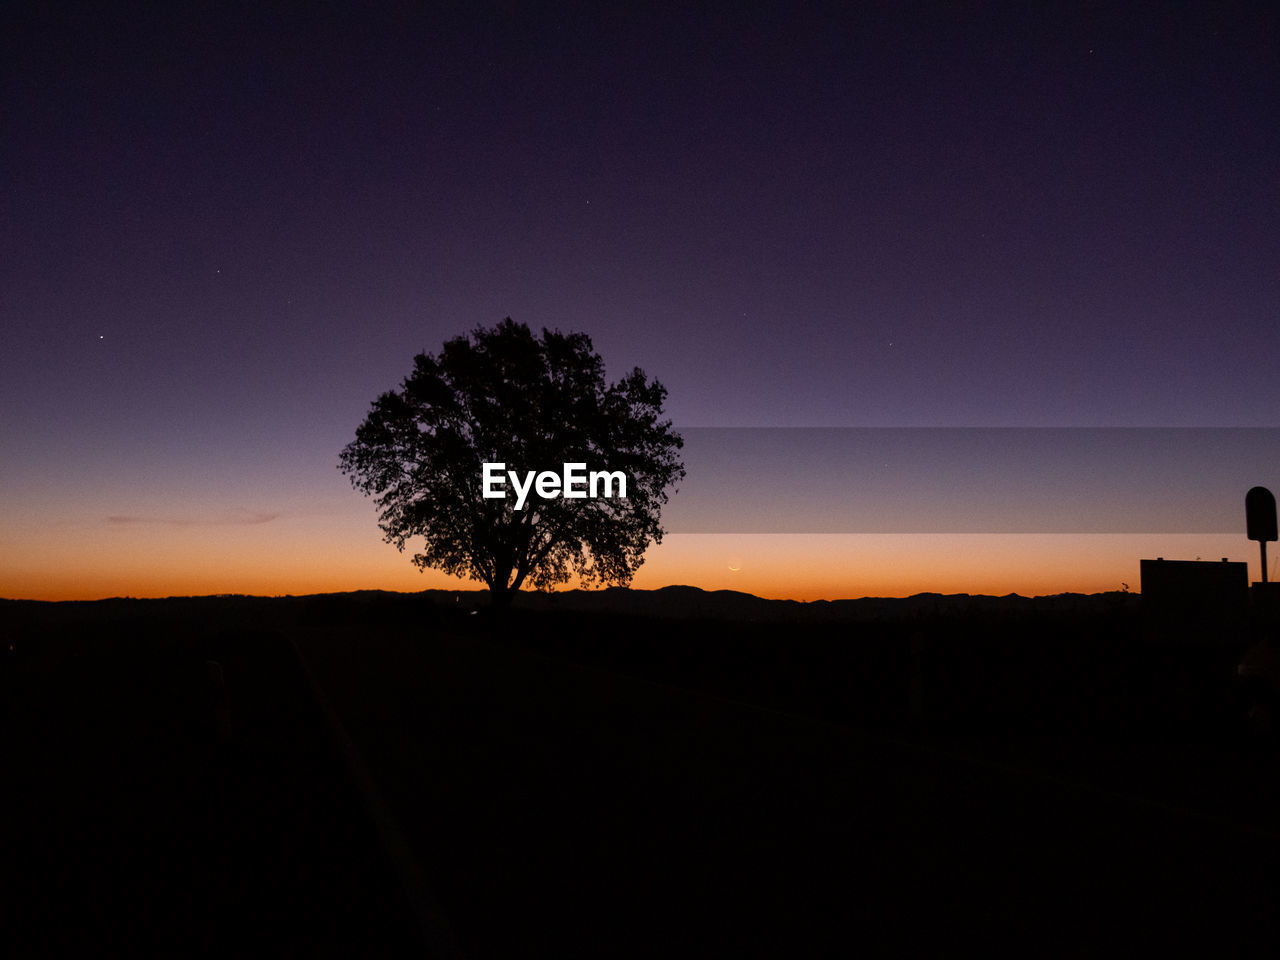 sky, silhouette, tree, beauty in nature, scenics - nature, tranquility, landscape, environment, plant, tranquil scene, no people, sunset, nature, land, field, copy space, night, idyllic, non-urban scene, clear sky, outdoors, dark